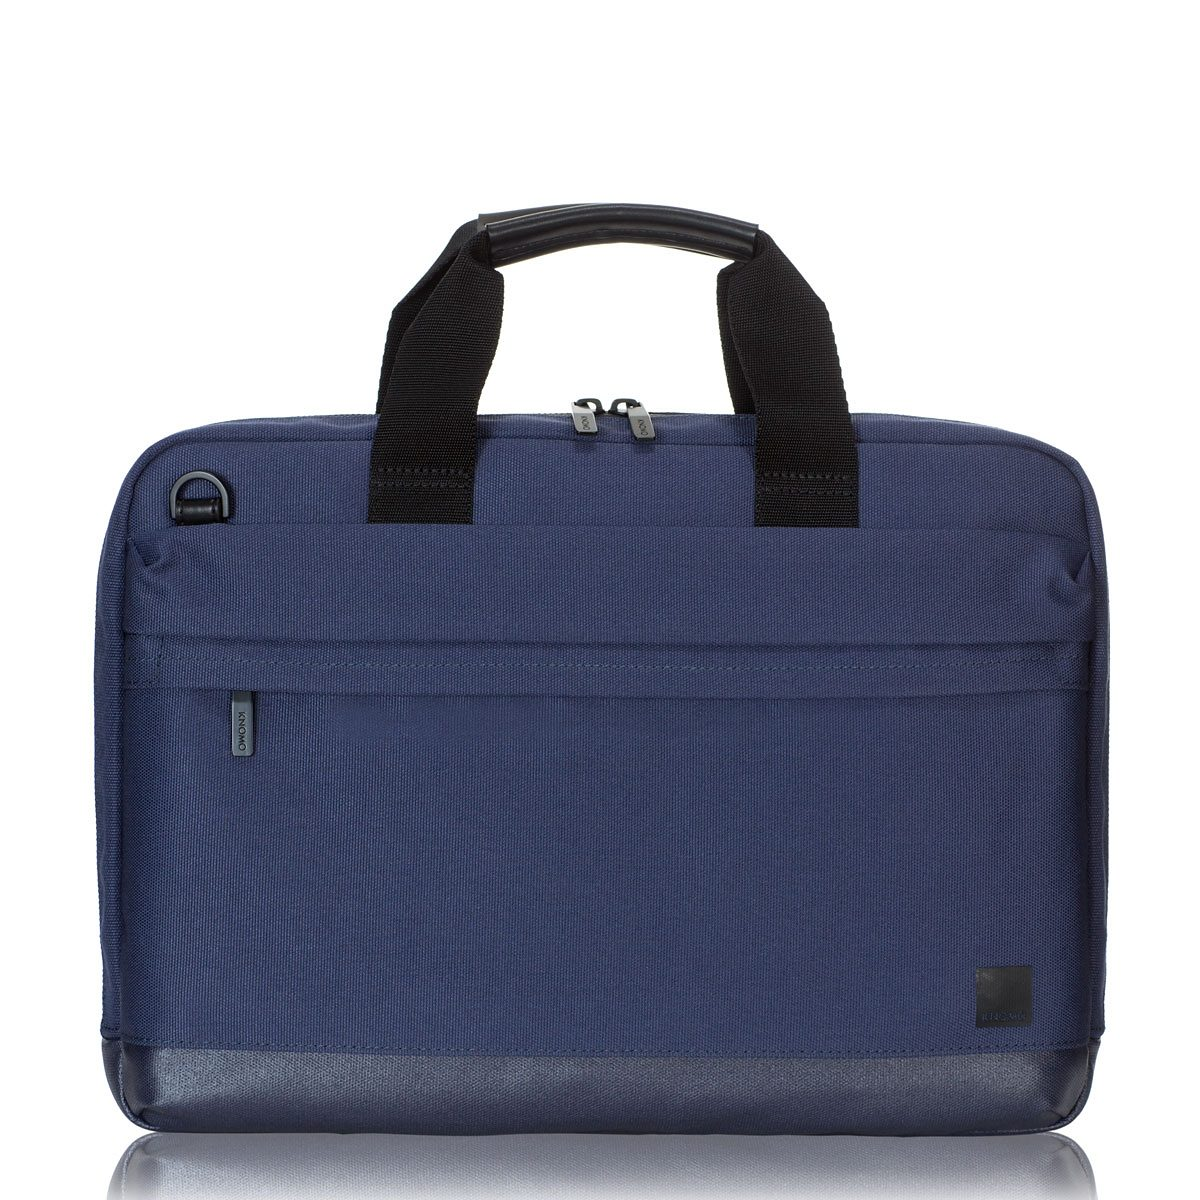 Knomo Laptoptasche aus Canvas für MacBook, Pro 12, 13 Zoll »Shoreditch Turin«